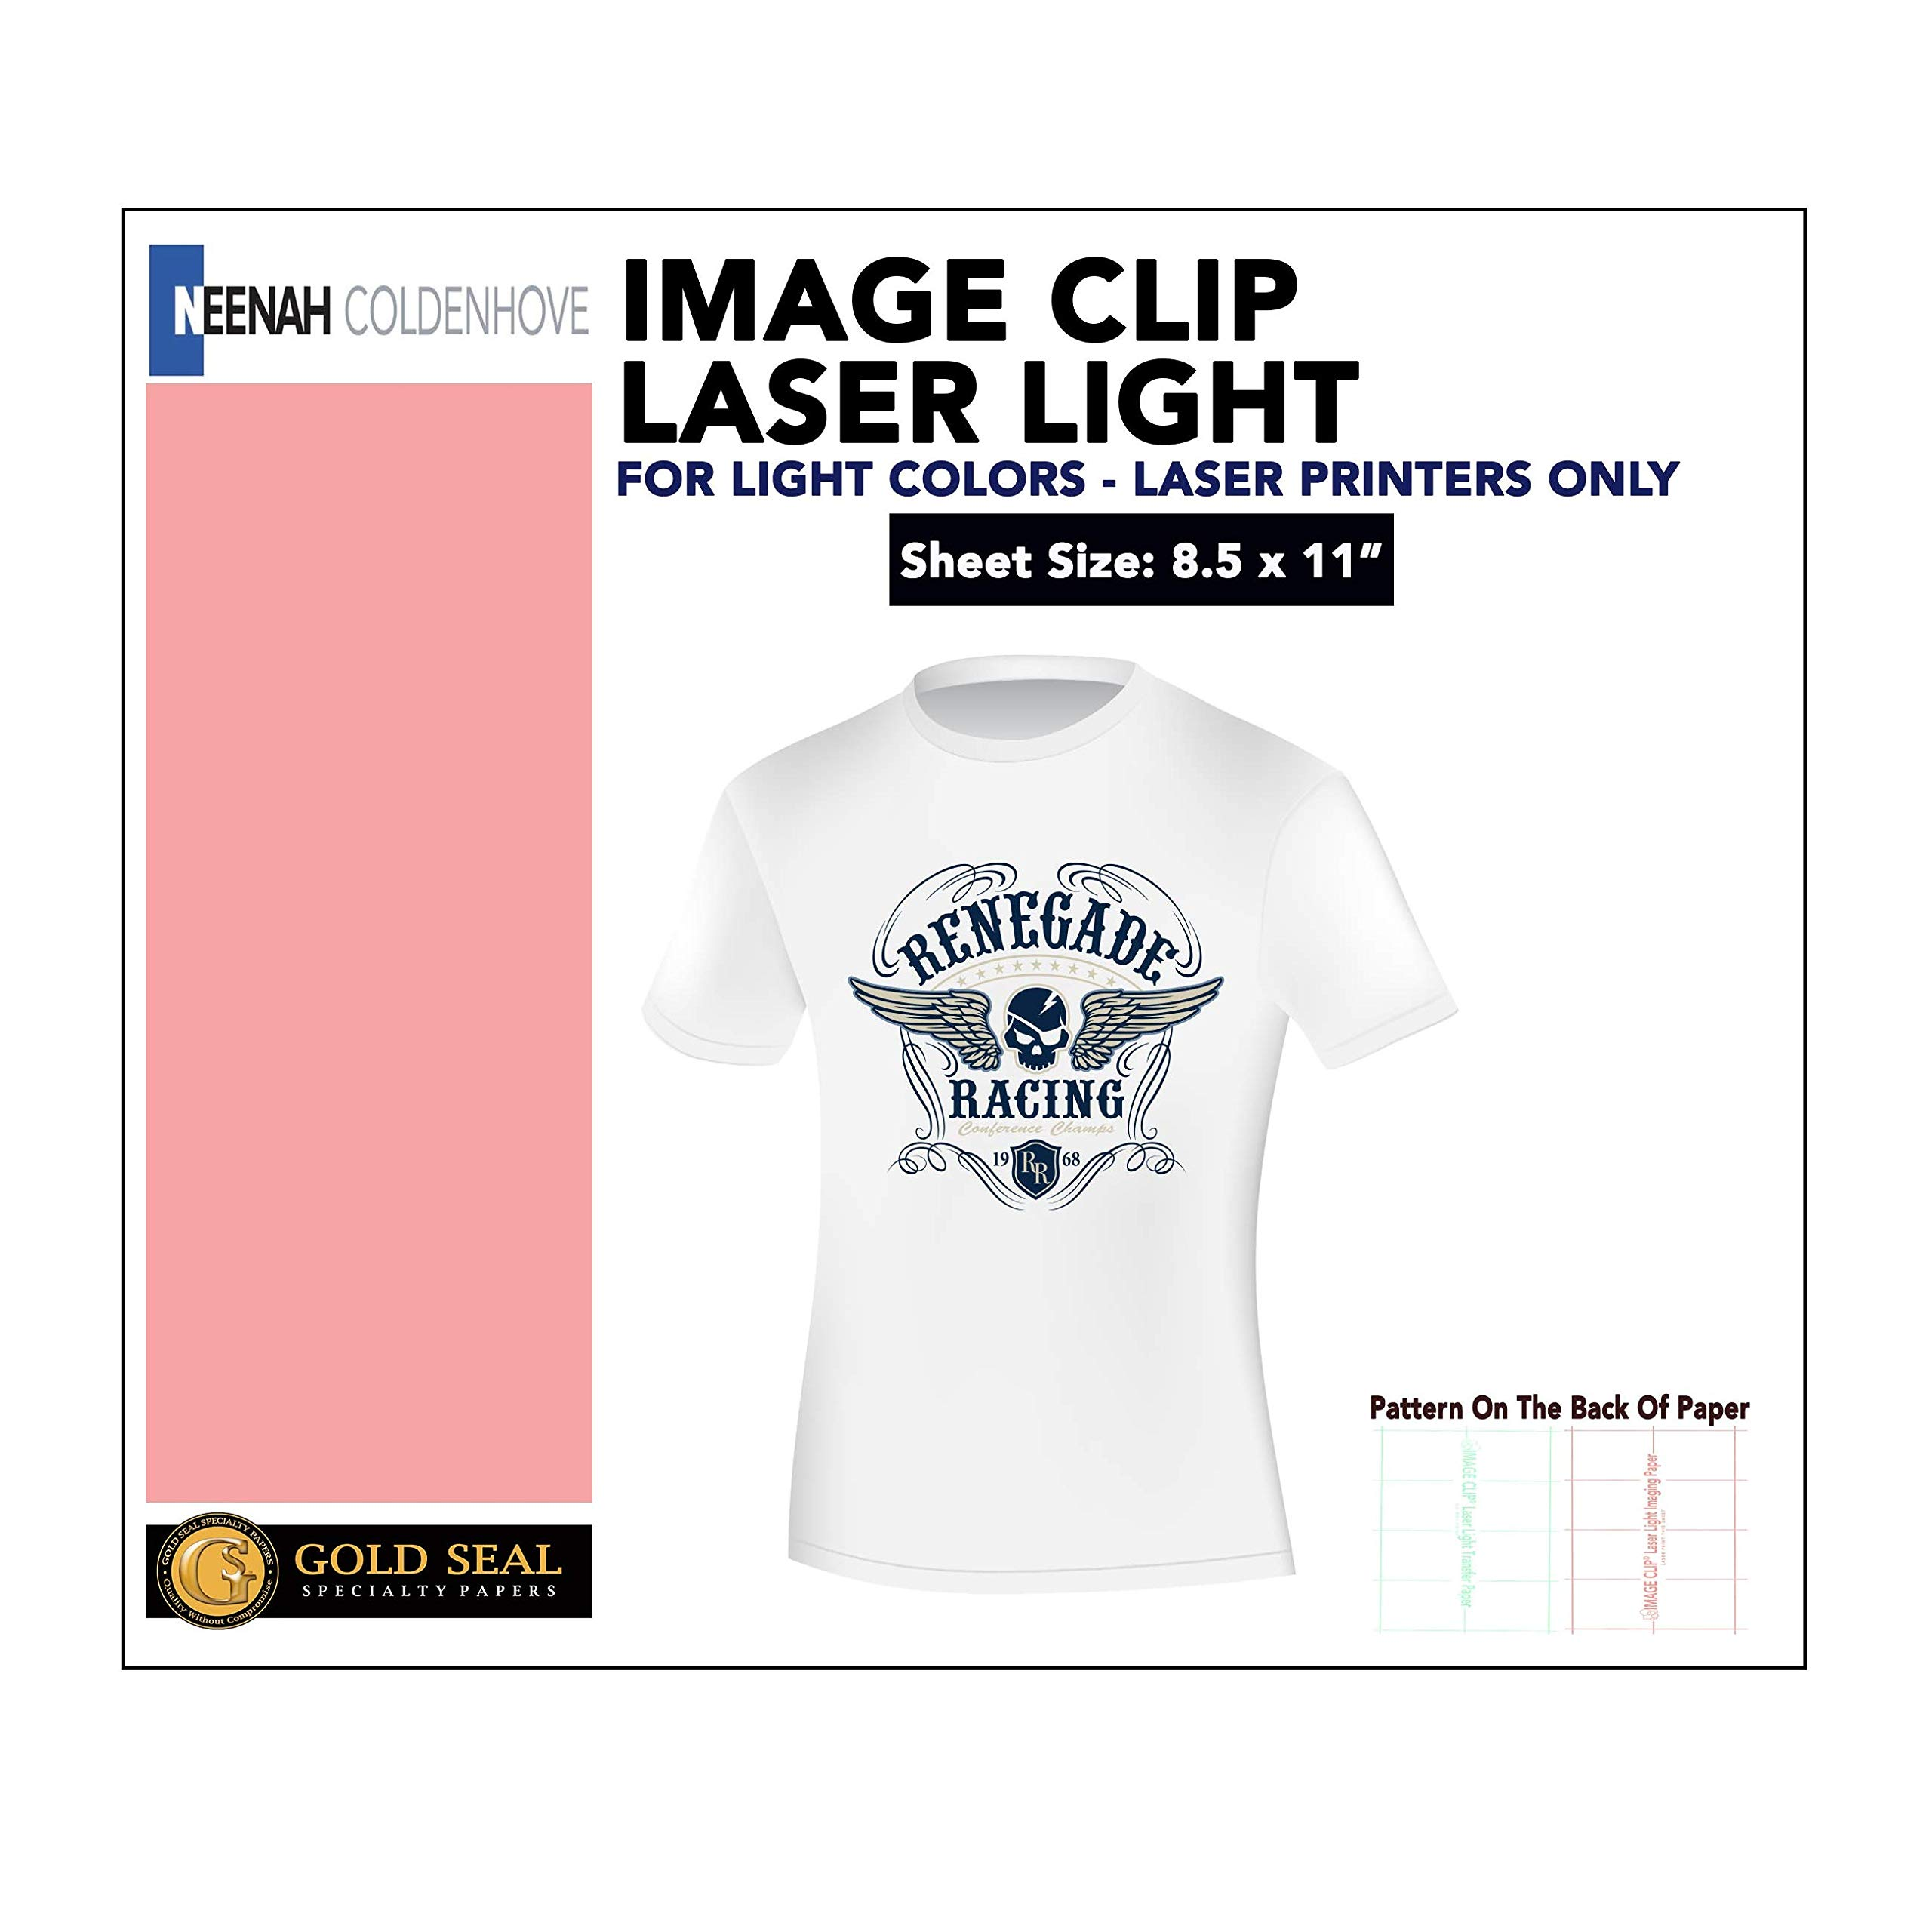 Image Clip Laser Light Self-Weeding Heat Transfer Paper 8.5 x 11-30Sheets